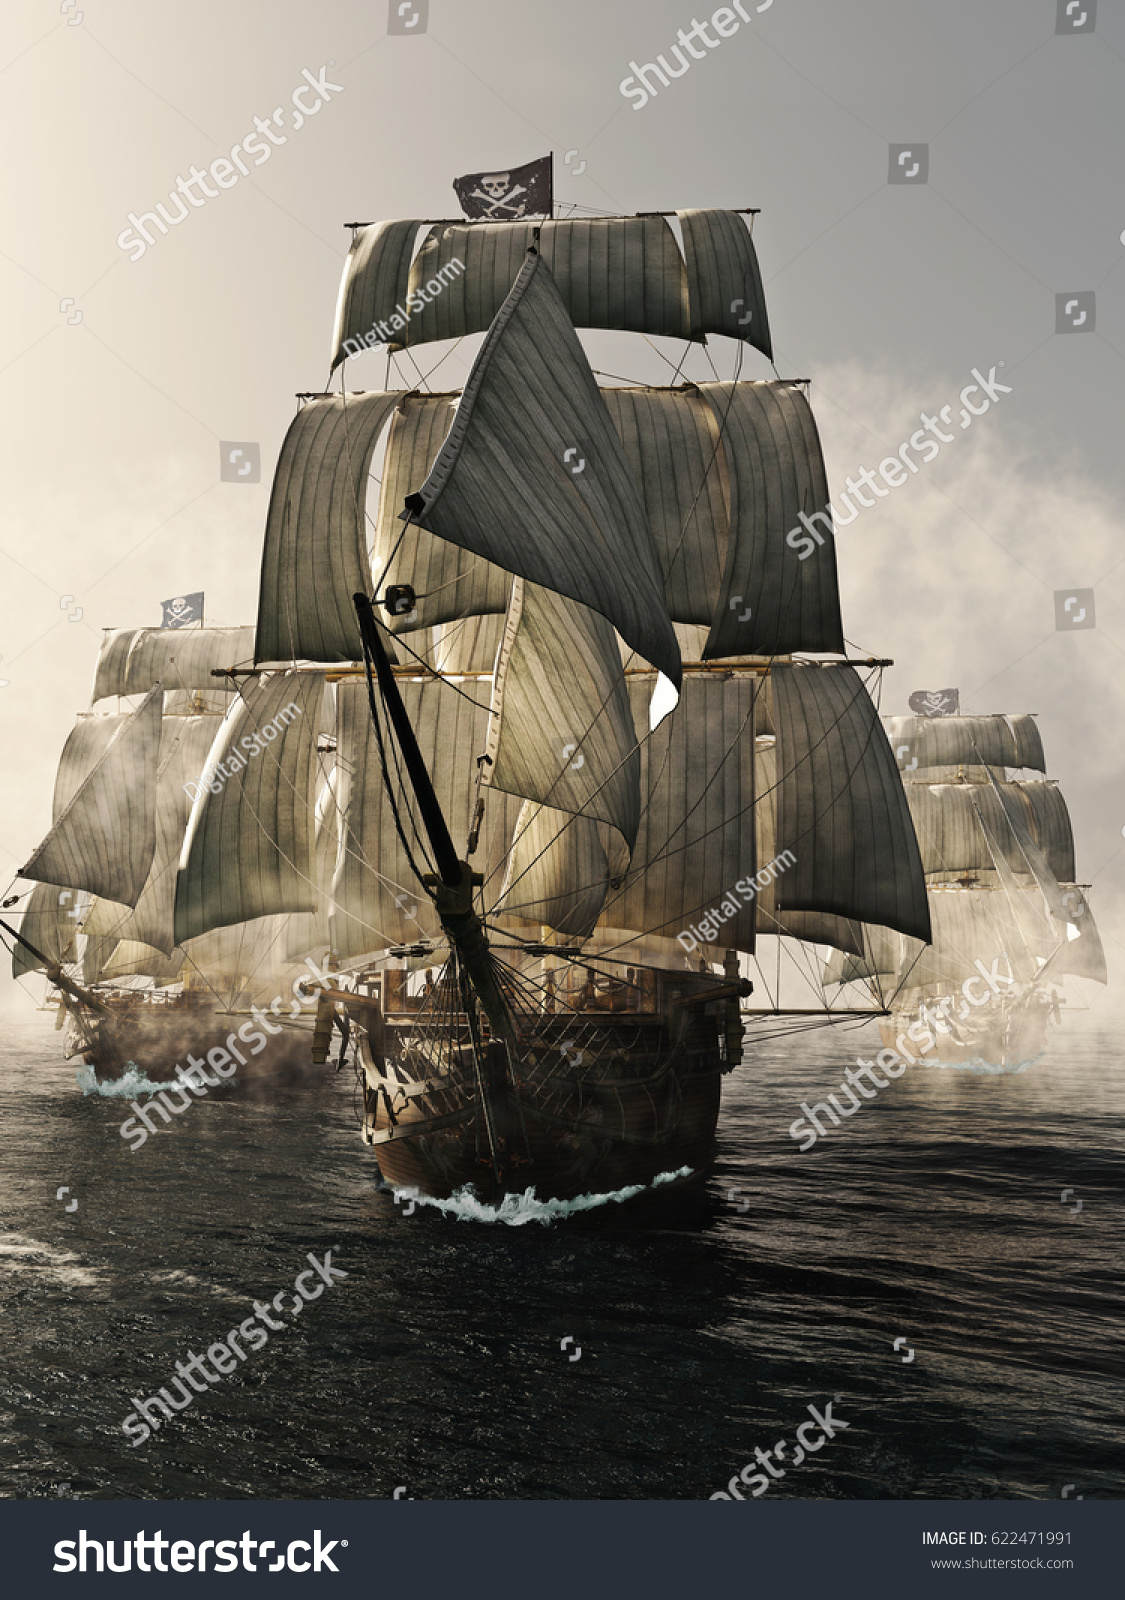 Pirate Ship Storm : pirate, storm, Front, Pirate, Fleet, Piercing, Stock, Illustration, 622471991